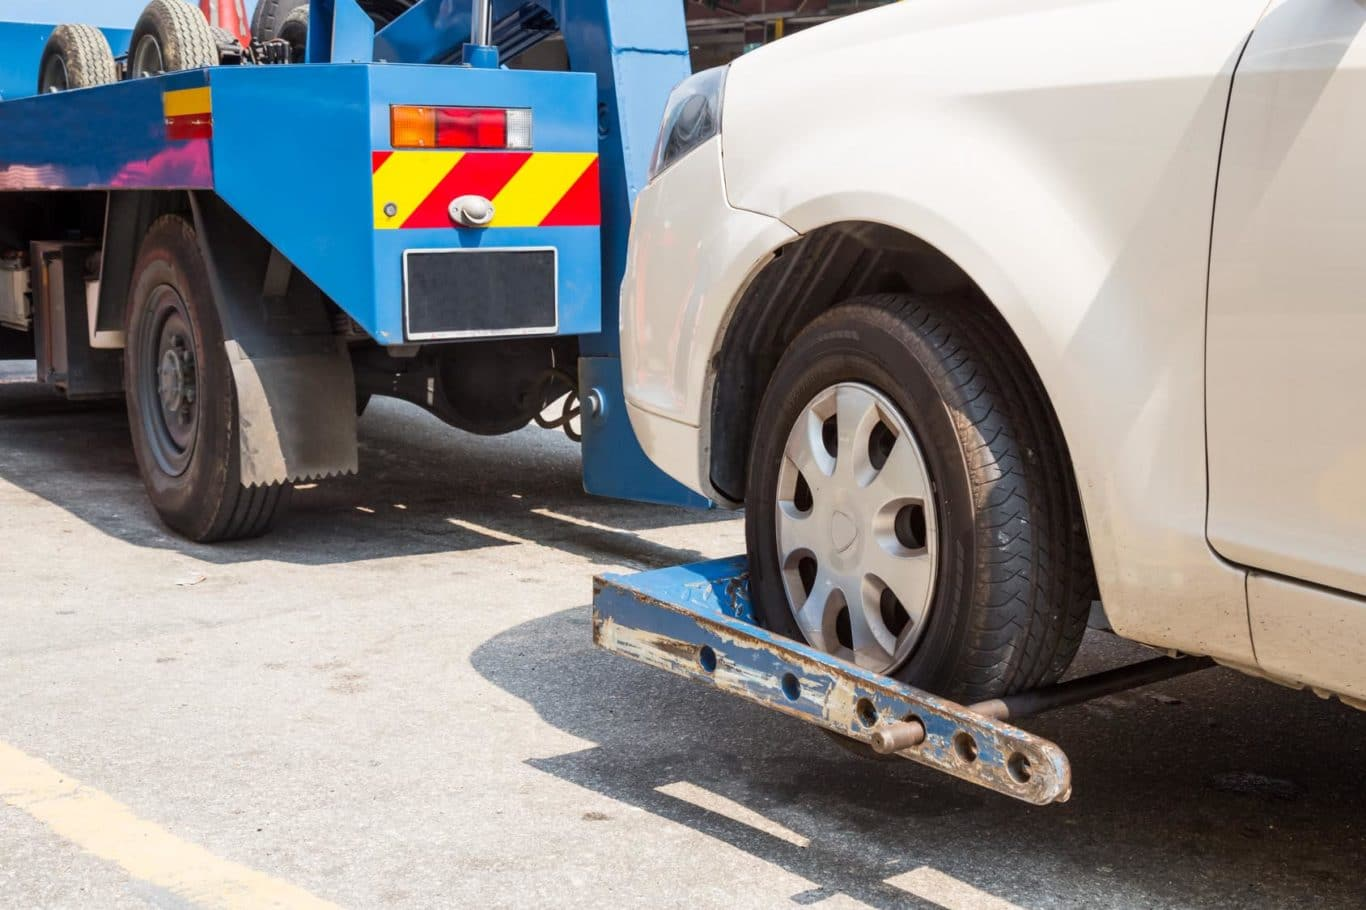 Baldoyle expert Car Towing services